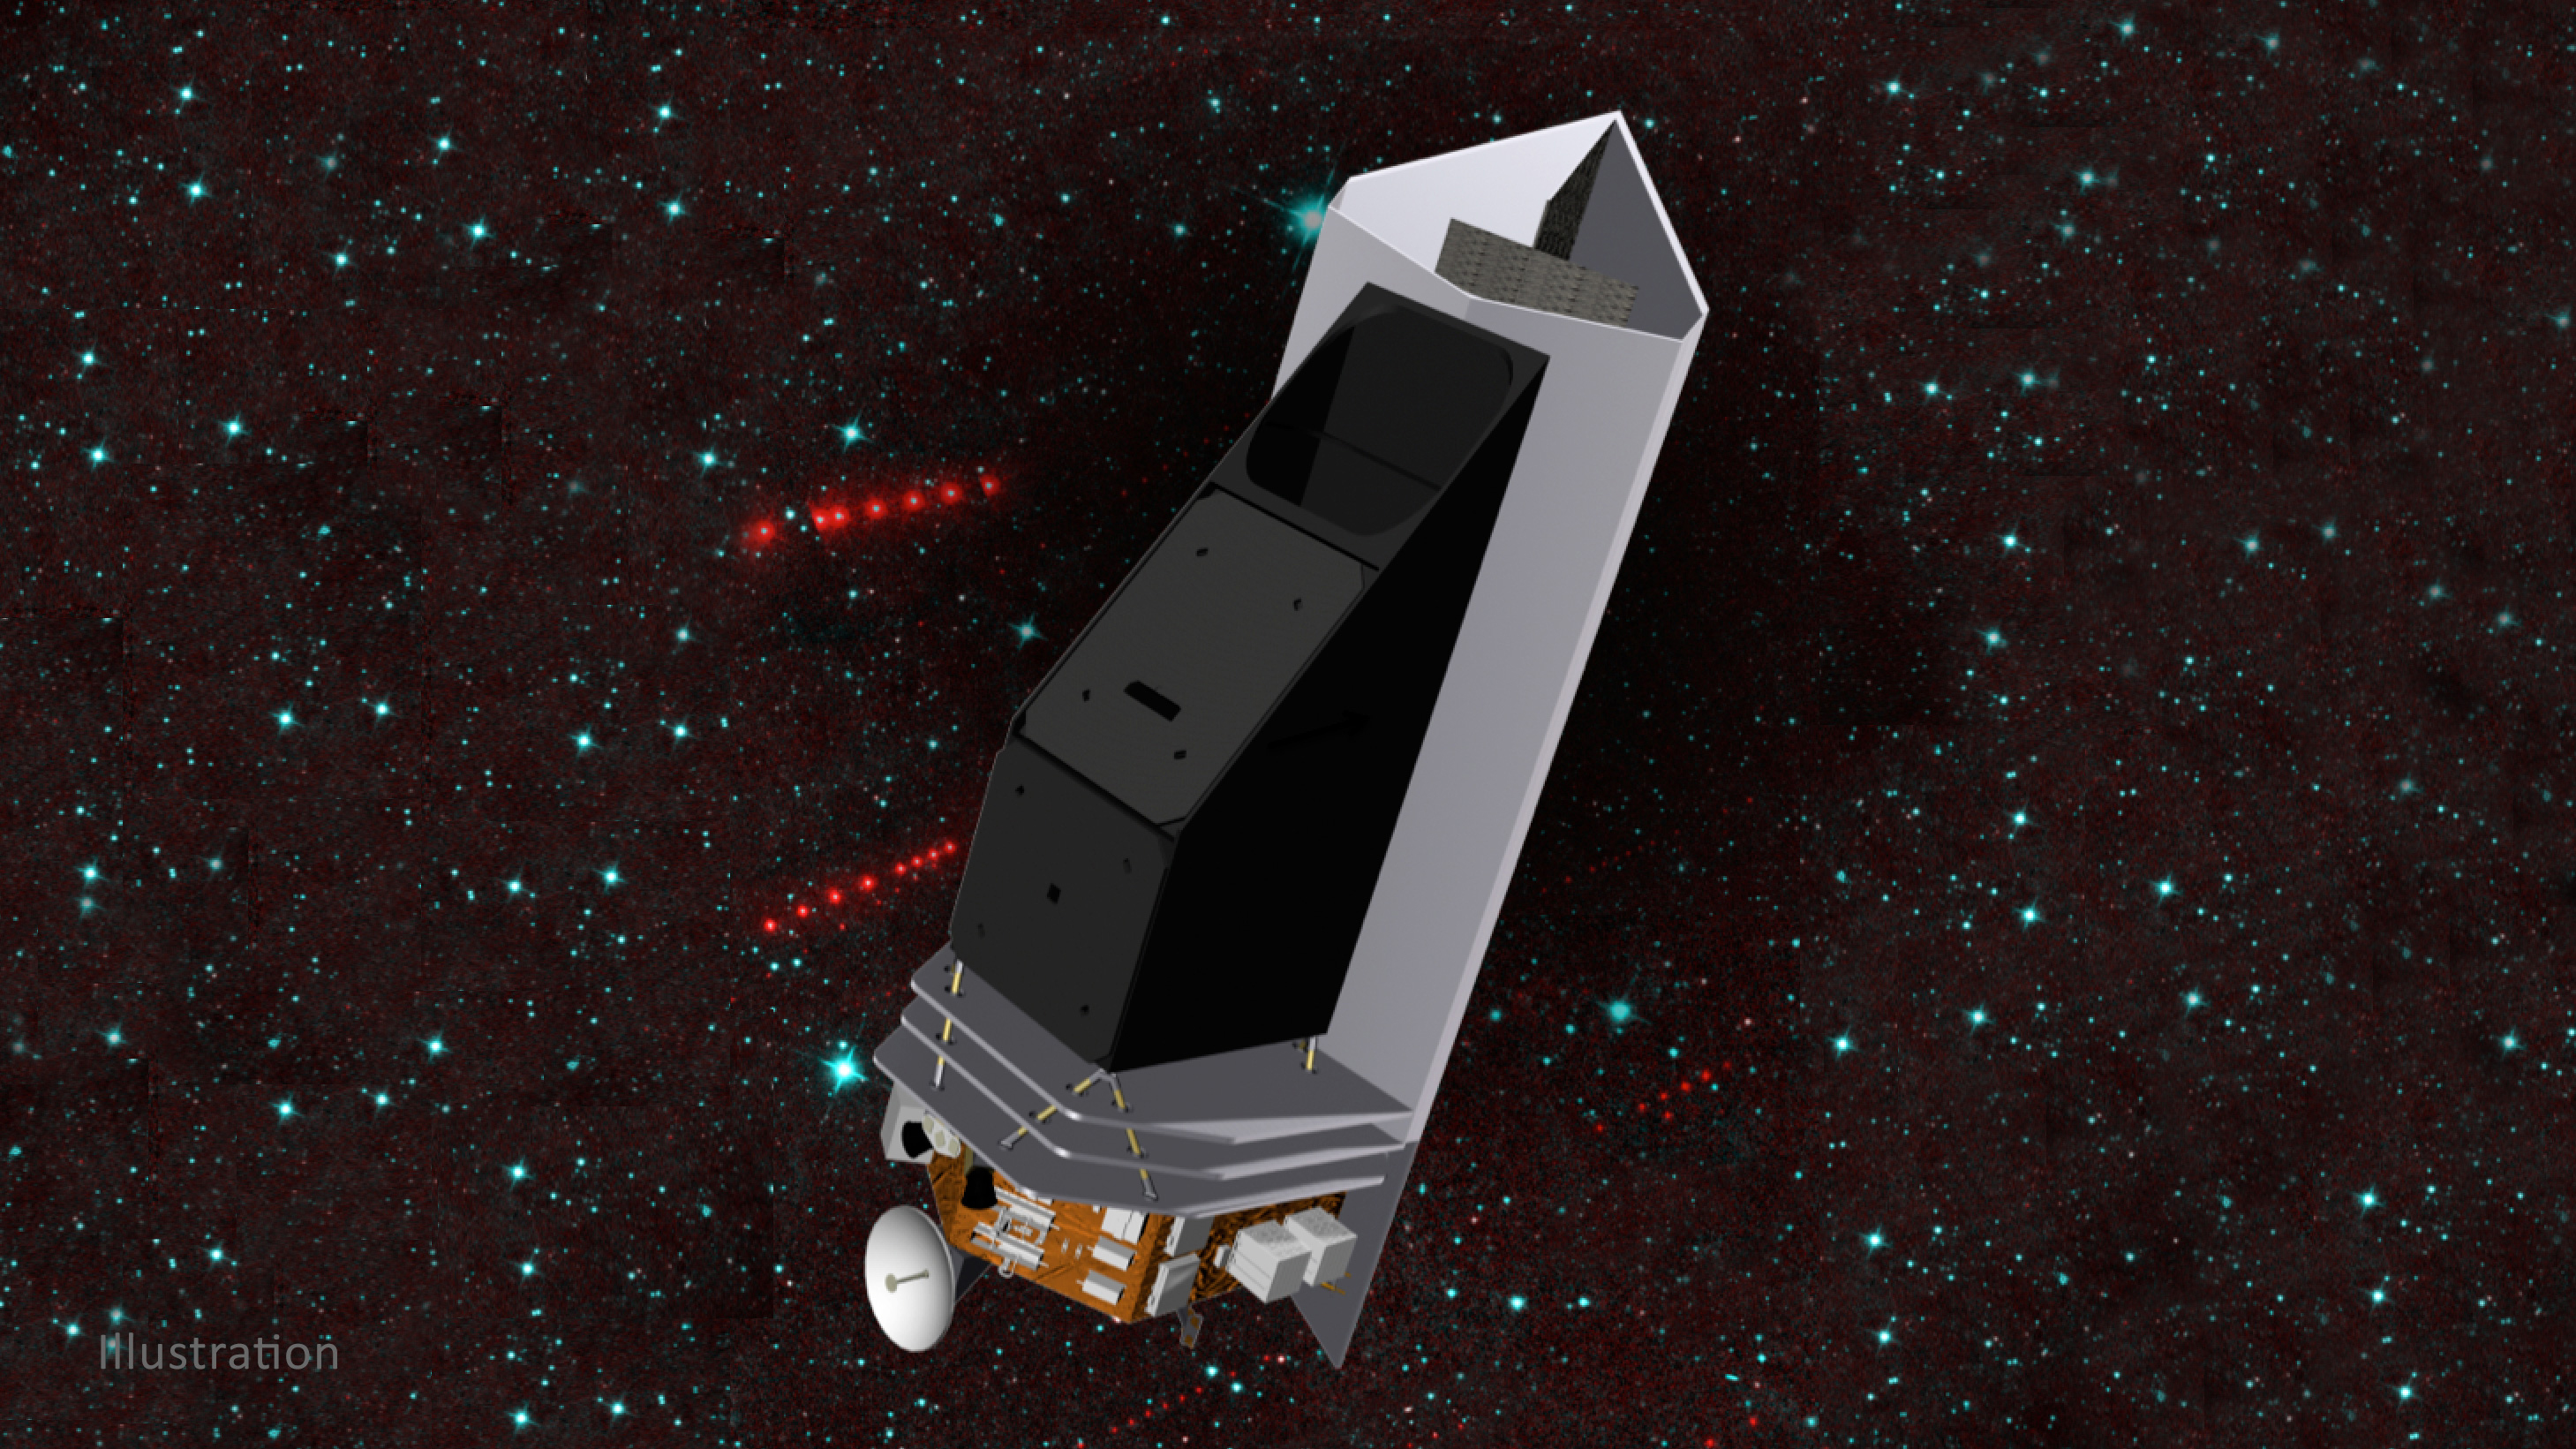 New space telescope could spot potentially hazardous asteroids heading for Earth